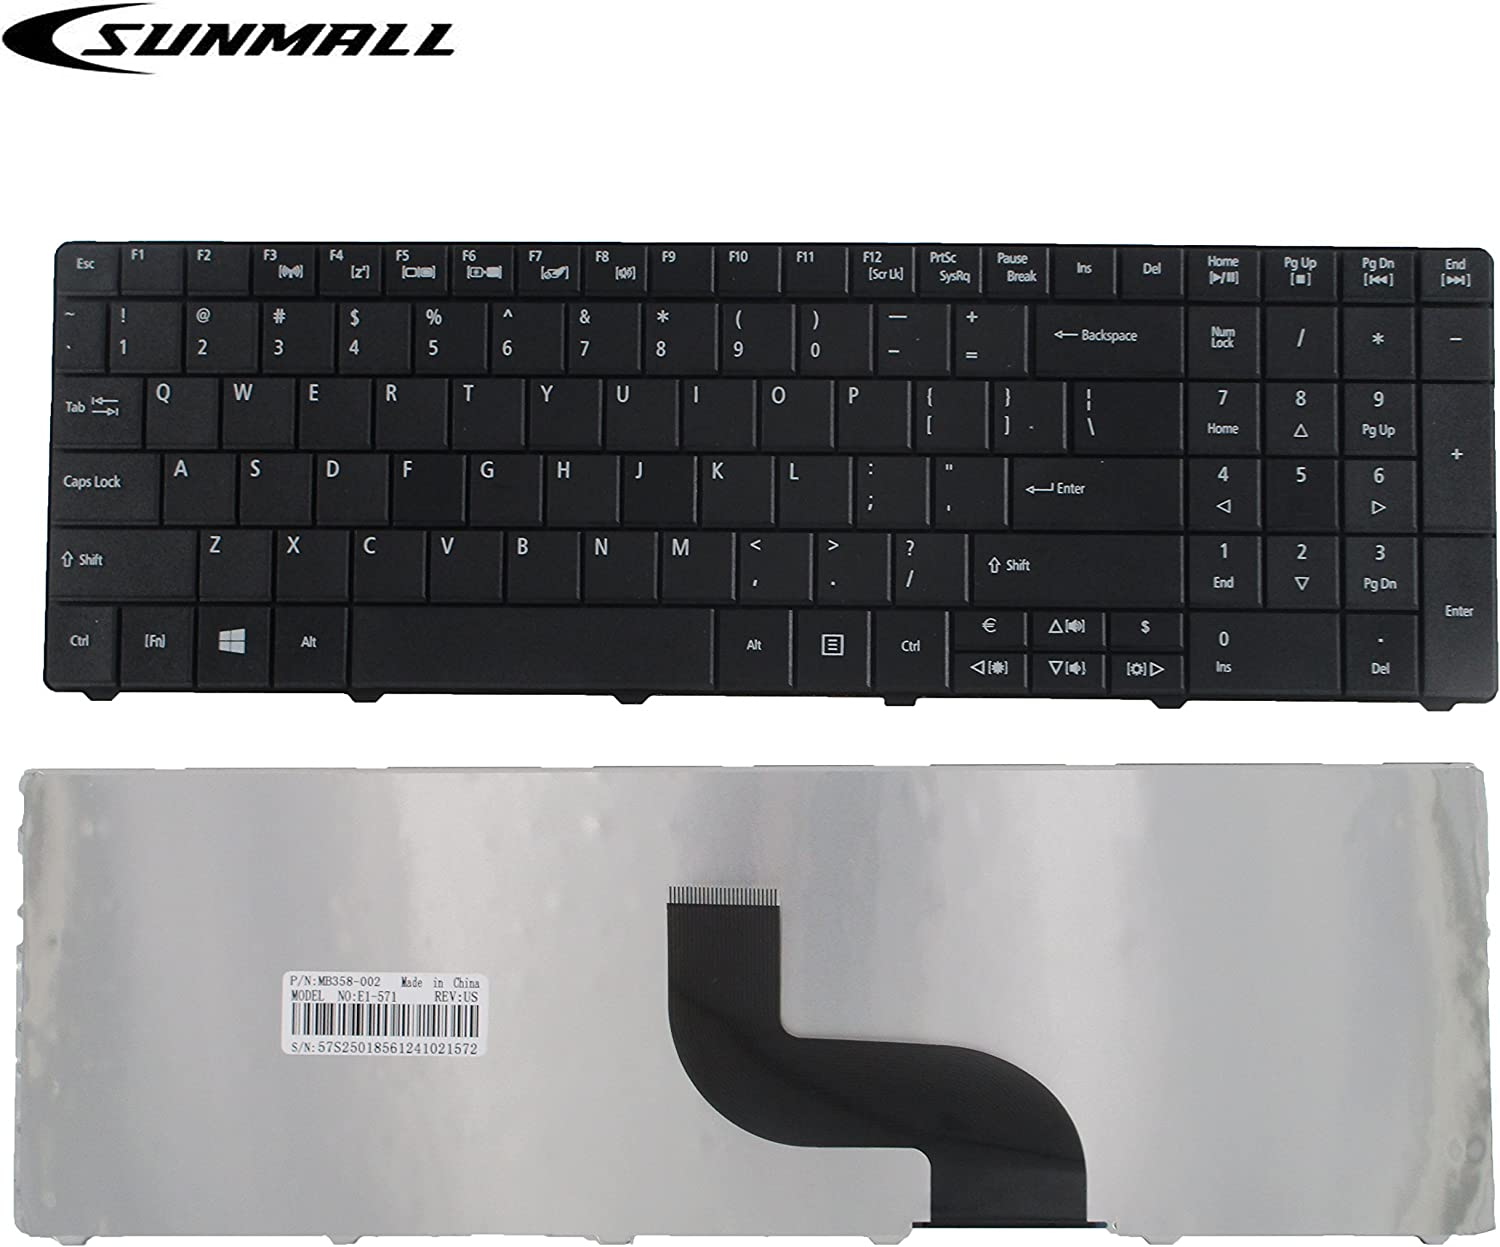 SUNMALL Keyboard Replacement for Acer Aspire E1-521 E1-531 E1-531G E1-571 E1-571G Travelmate P253-E P253-M 8571 8531 8751G 8572 5742Z 5744 5744Z Series Laptop Black US Layout